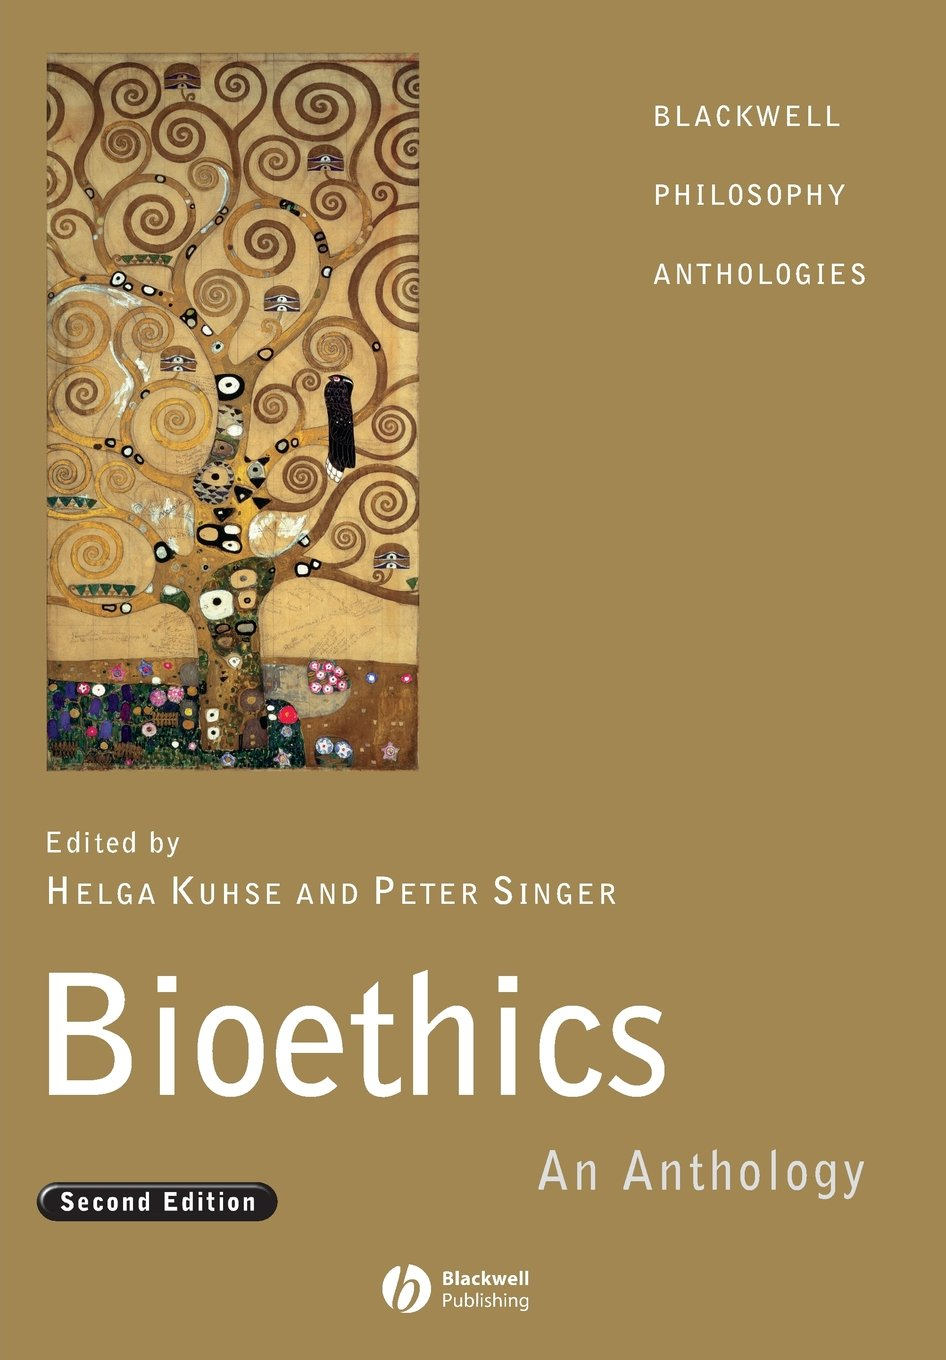 bioethics 2e an anthology blackwell philosophy anthologies bioethics 2e an anthology blackwell philosophy anthologies co uk kuhse singer 9781405129480 books